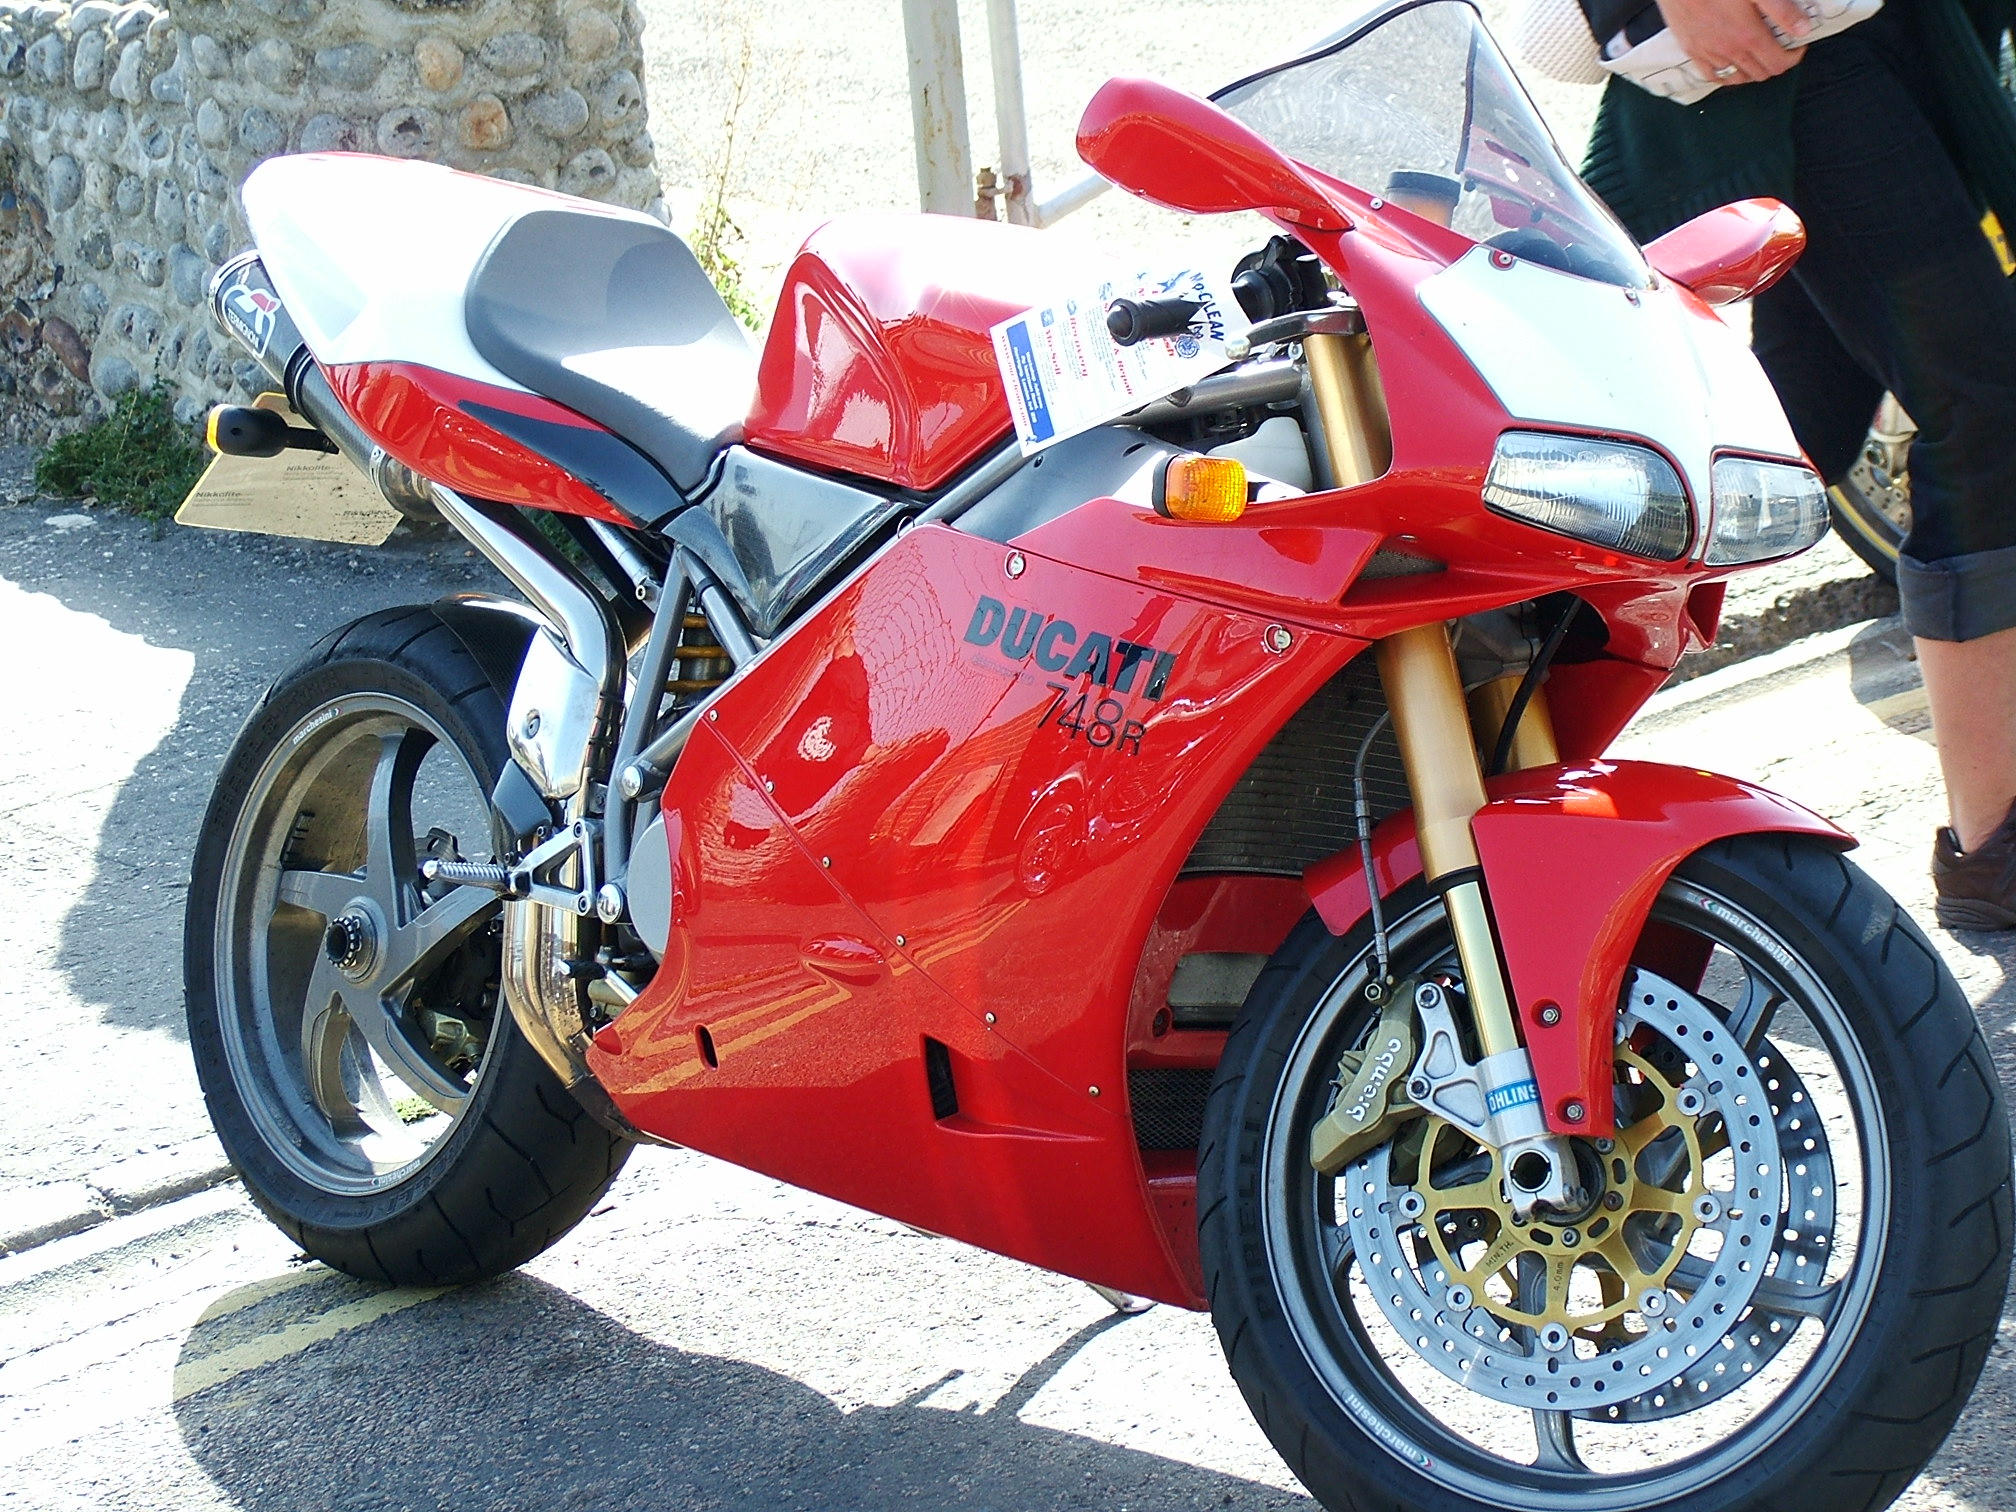 Ducati 996 wallpapers #11253